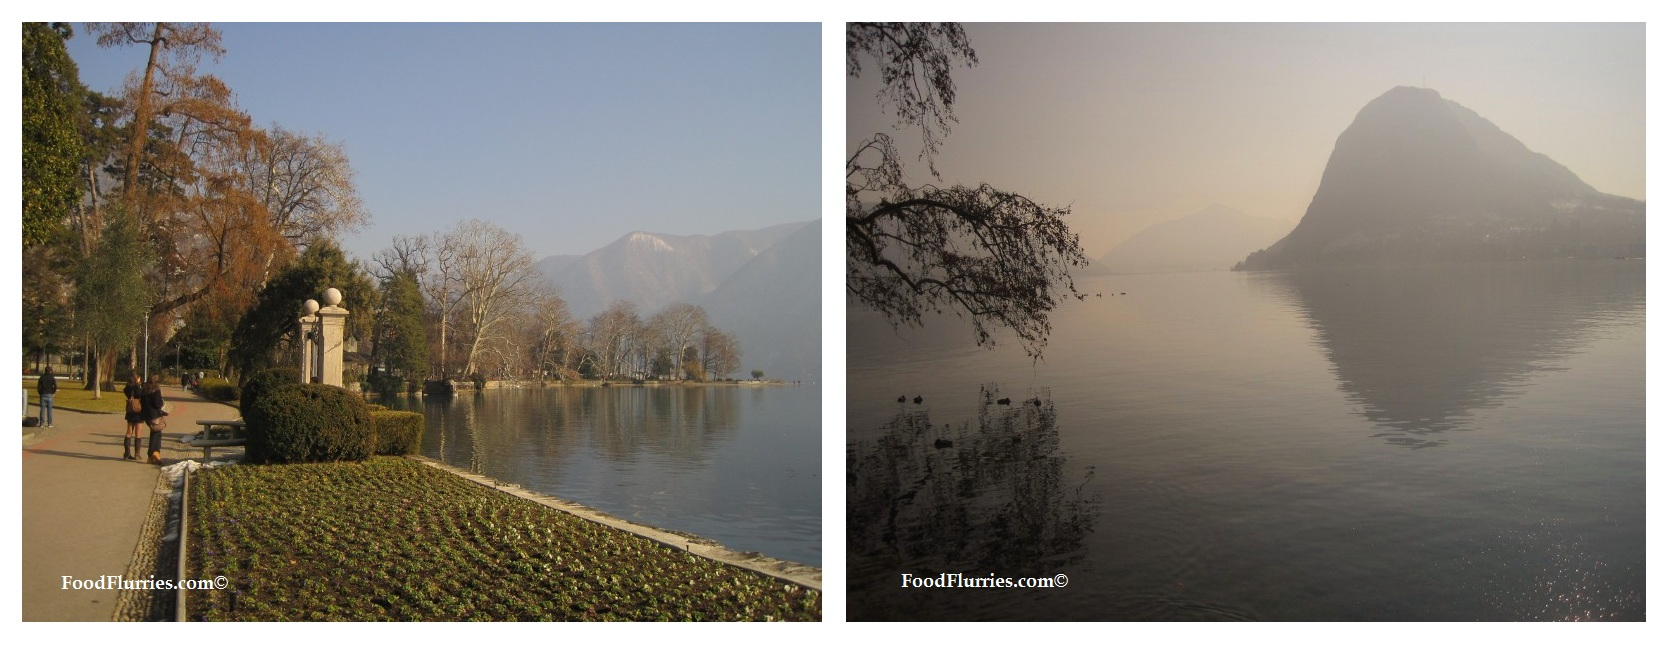 The beautiful Parco Civico, along the shores of Lake Lugano.